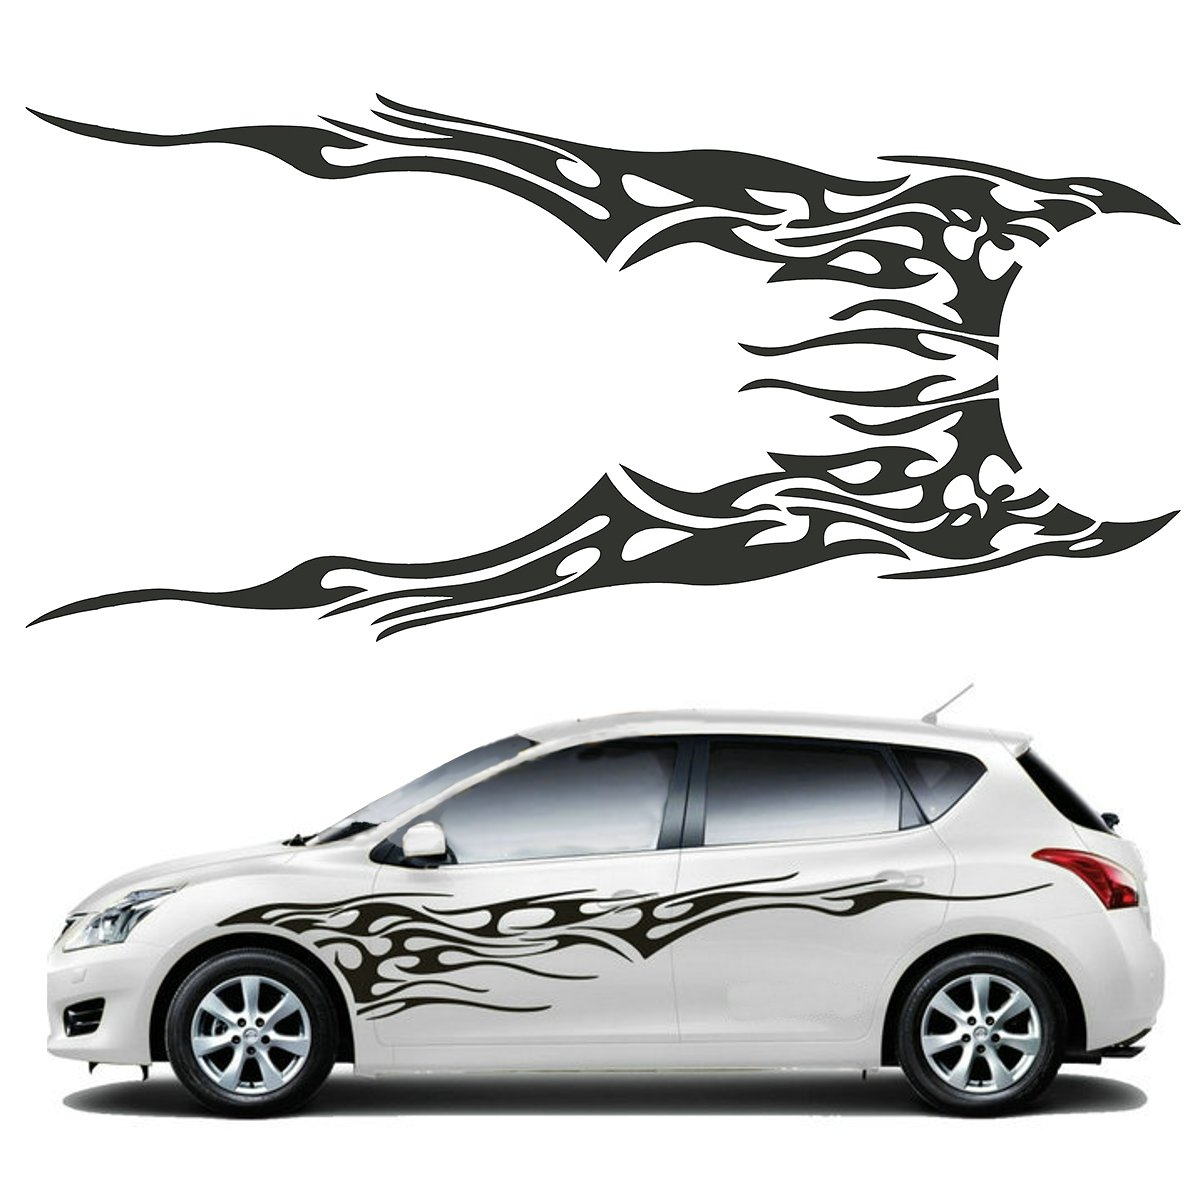 Sticker design for car online - Pair 210 5 X 48cm Black Universal Car Flame Graphics Vinyl Car Side Sticker Decal Waterproof